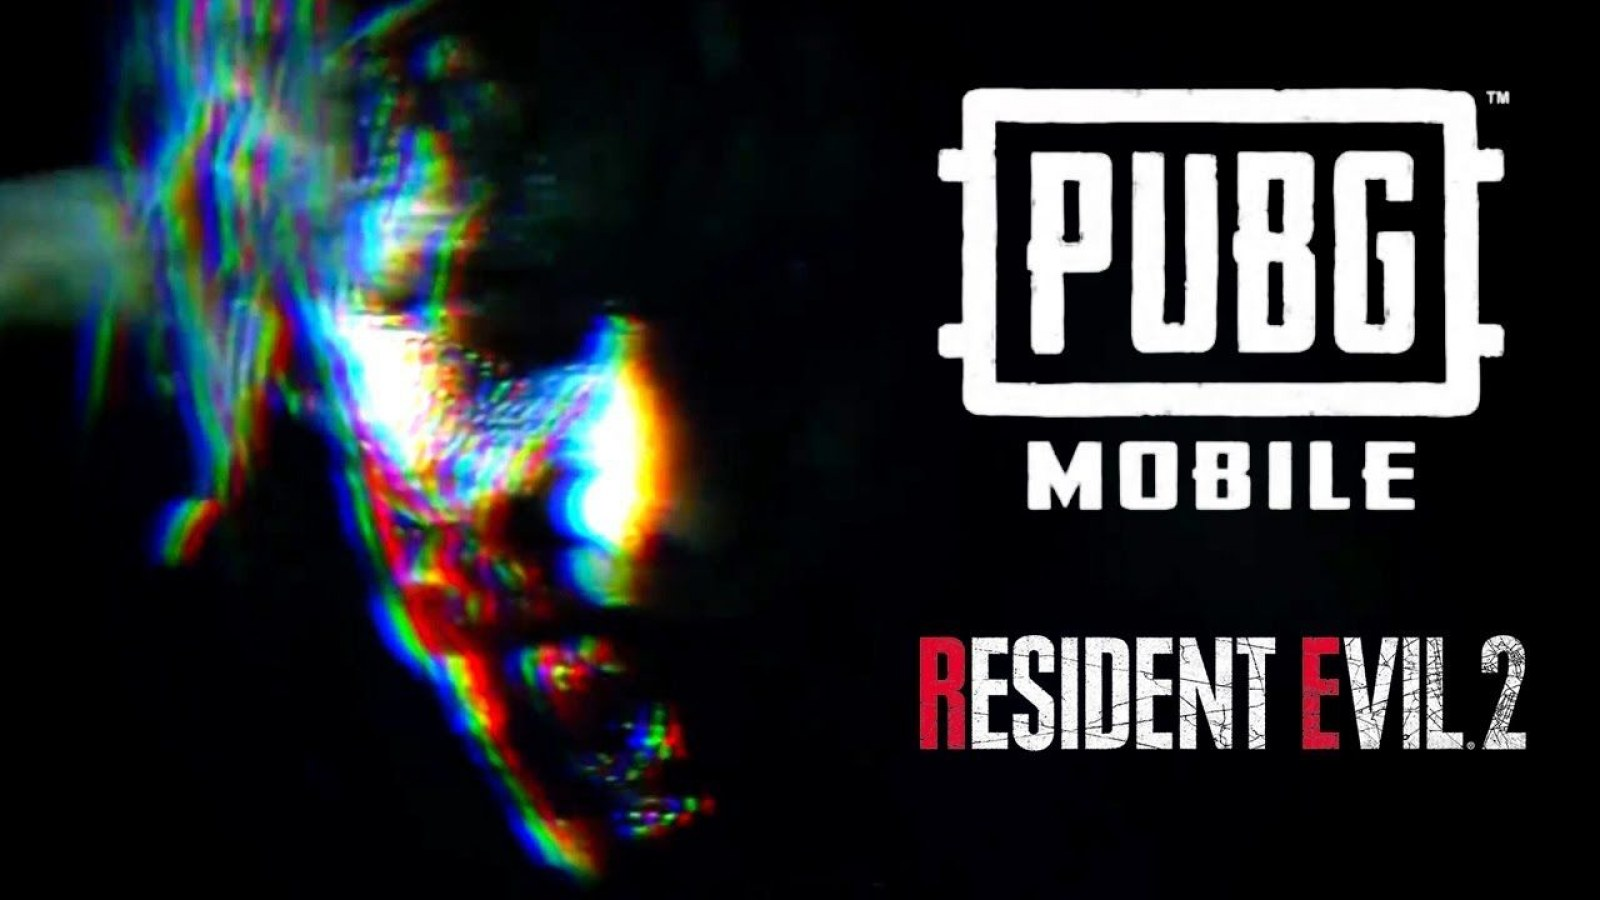 PUBG Mobile' 0 11 0 Beta Live on Android, iOS With Zombie Mode: How